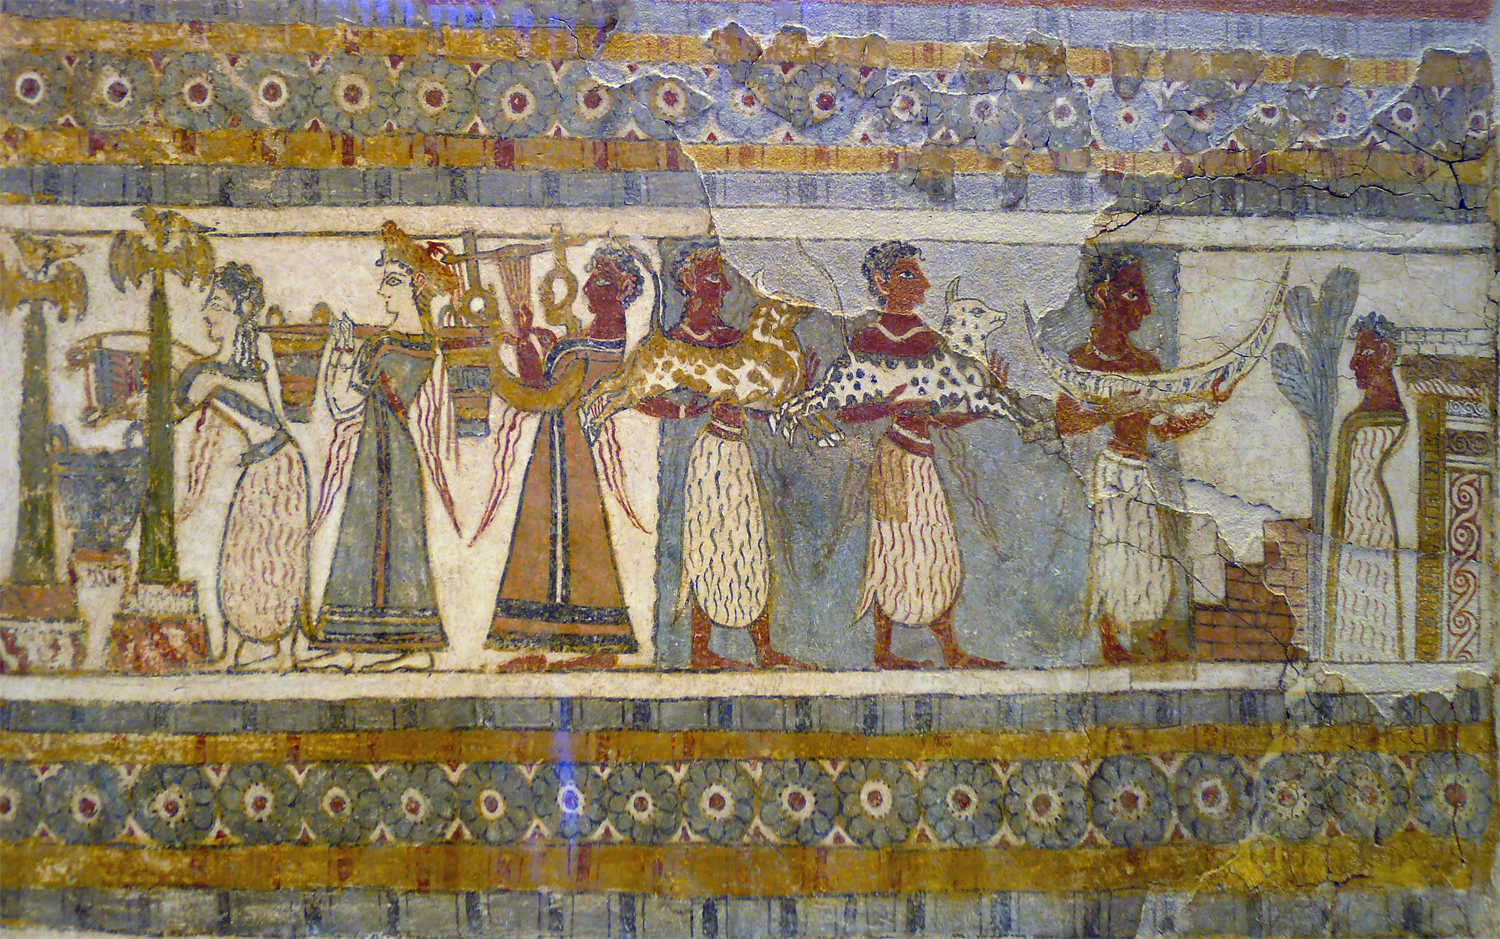 Fresco of life in Knossos